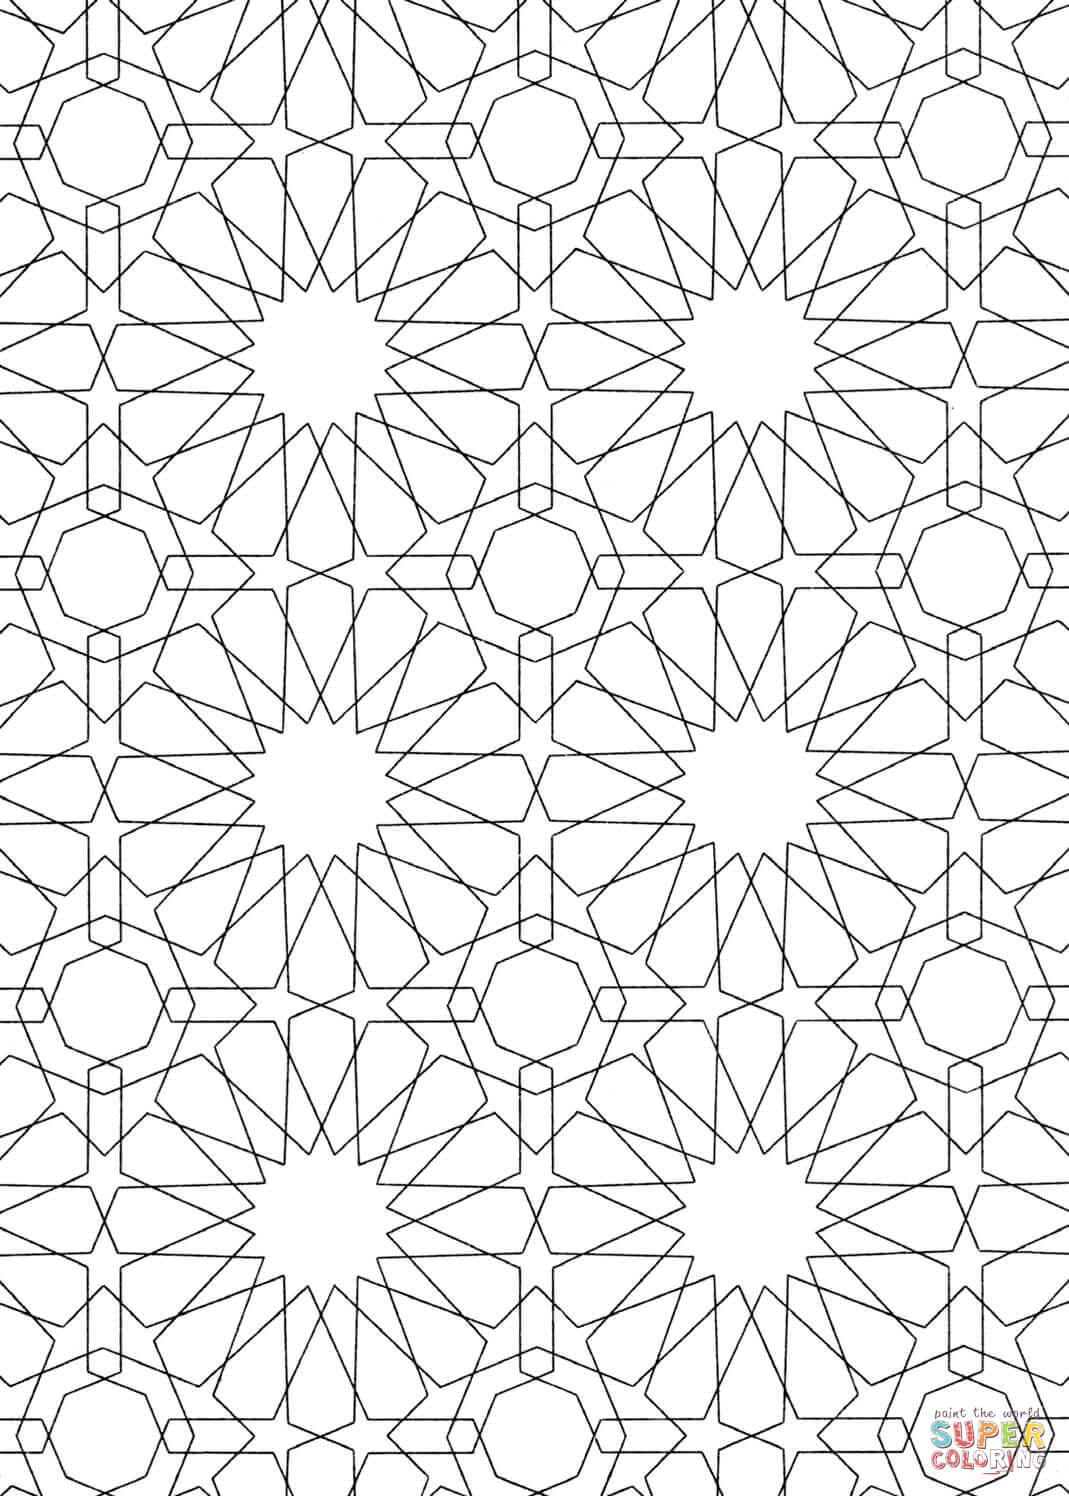 coloring patterns islamic pattern coloring page free printable coloring pages patterns coloring